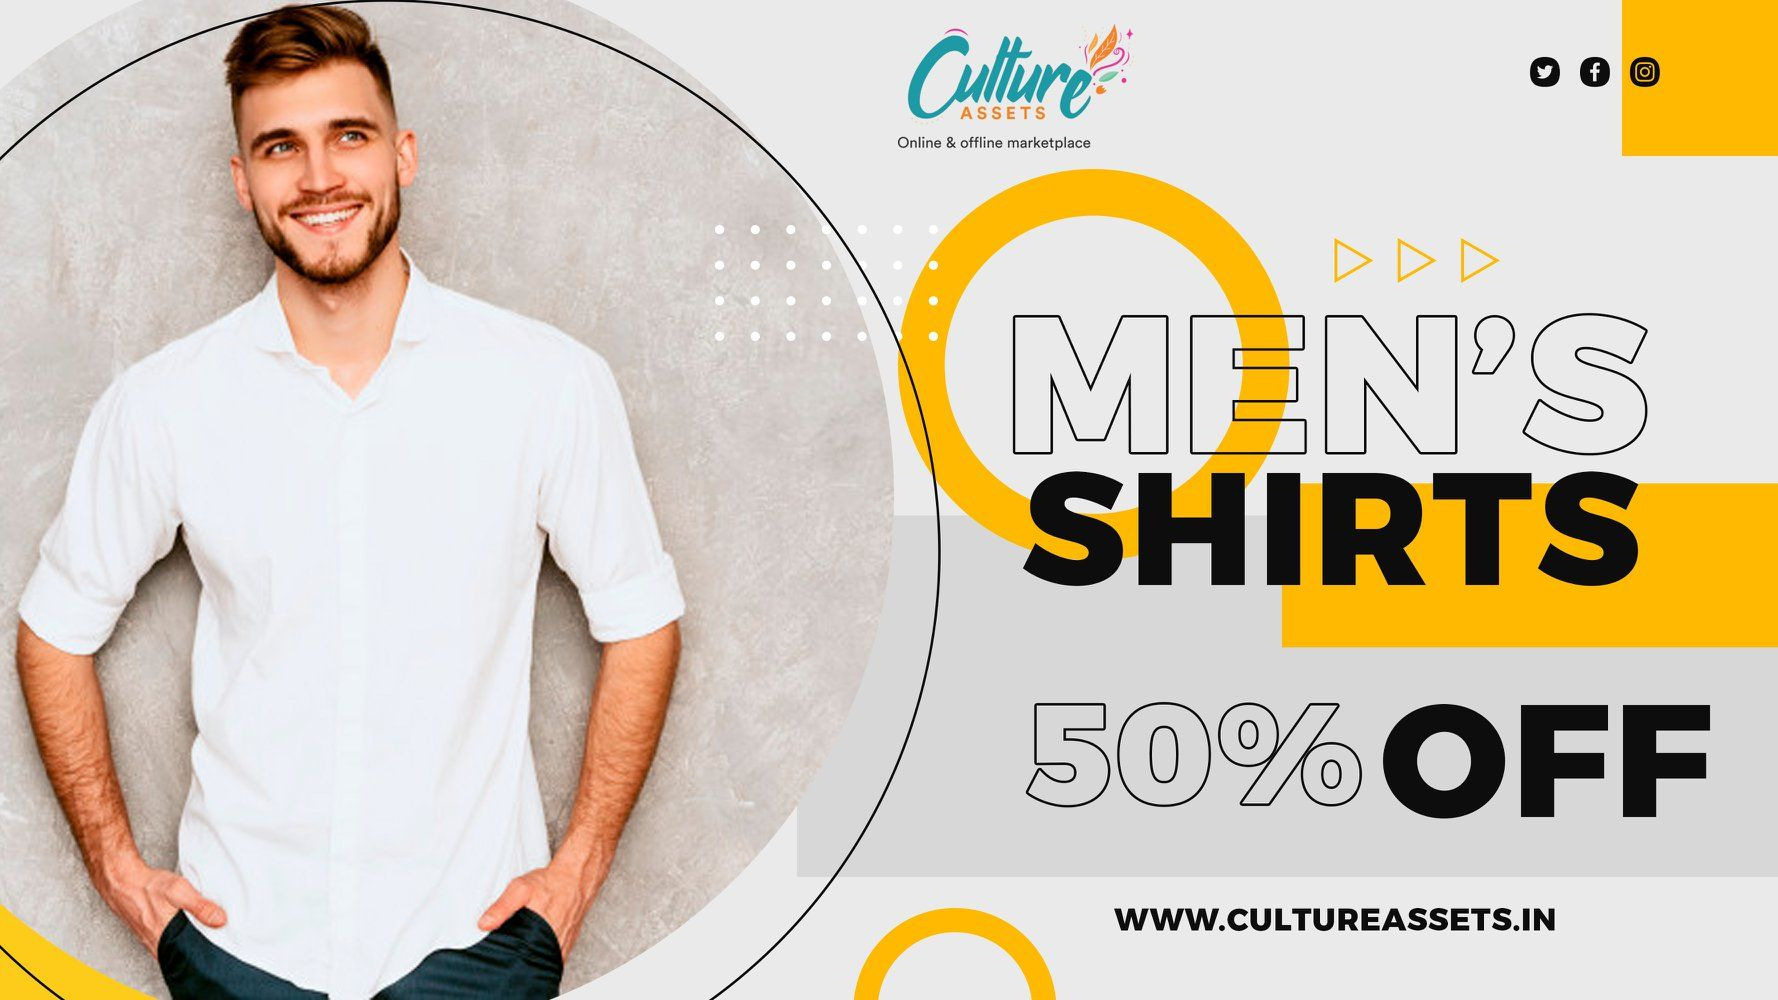 50% DISCOUNT...!!!! Buy casual shirts for men online. Wide range of printed shirts, striped shirts, plain shirts, tropical shirts with long and half sleeve are available at Culture Assets. STAY TUNED.!!!! . . . . #mensshirt #mensfashion #menswear #shirt #mensshirts #fashion #mensstyle #shirts #menstyle #tshirt #onlineshopping #mensshirtstyle #mensclothing #mensweardaily #instafashion #fashionista #ethnicwear #partywear #style #mens #men #jeans #fabric #shirtstyle #menstshirt #indianfashion #inst